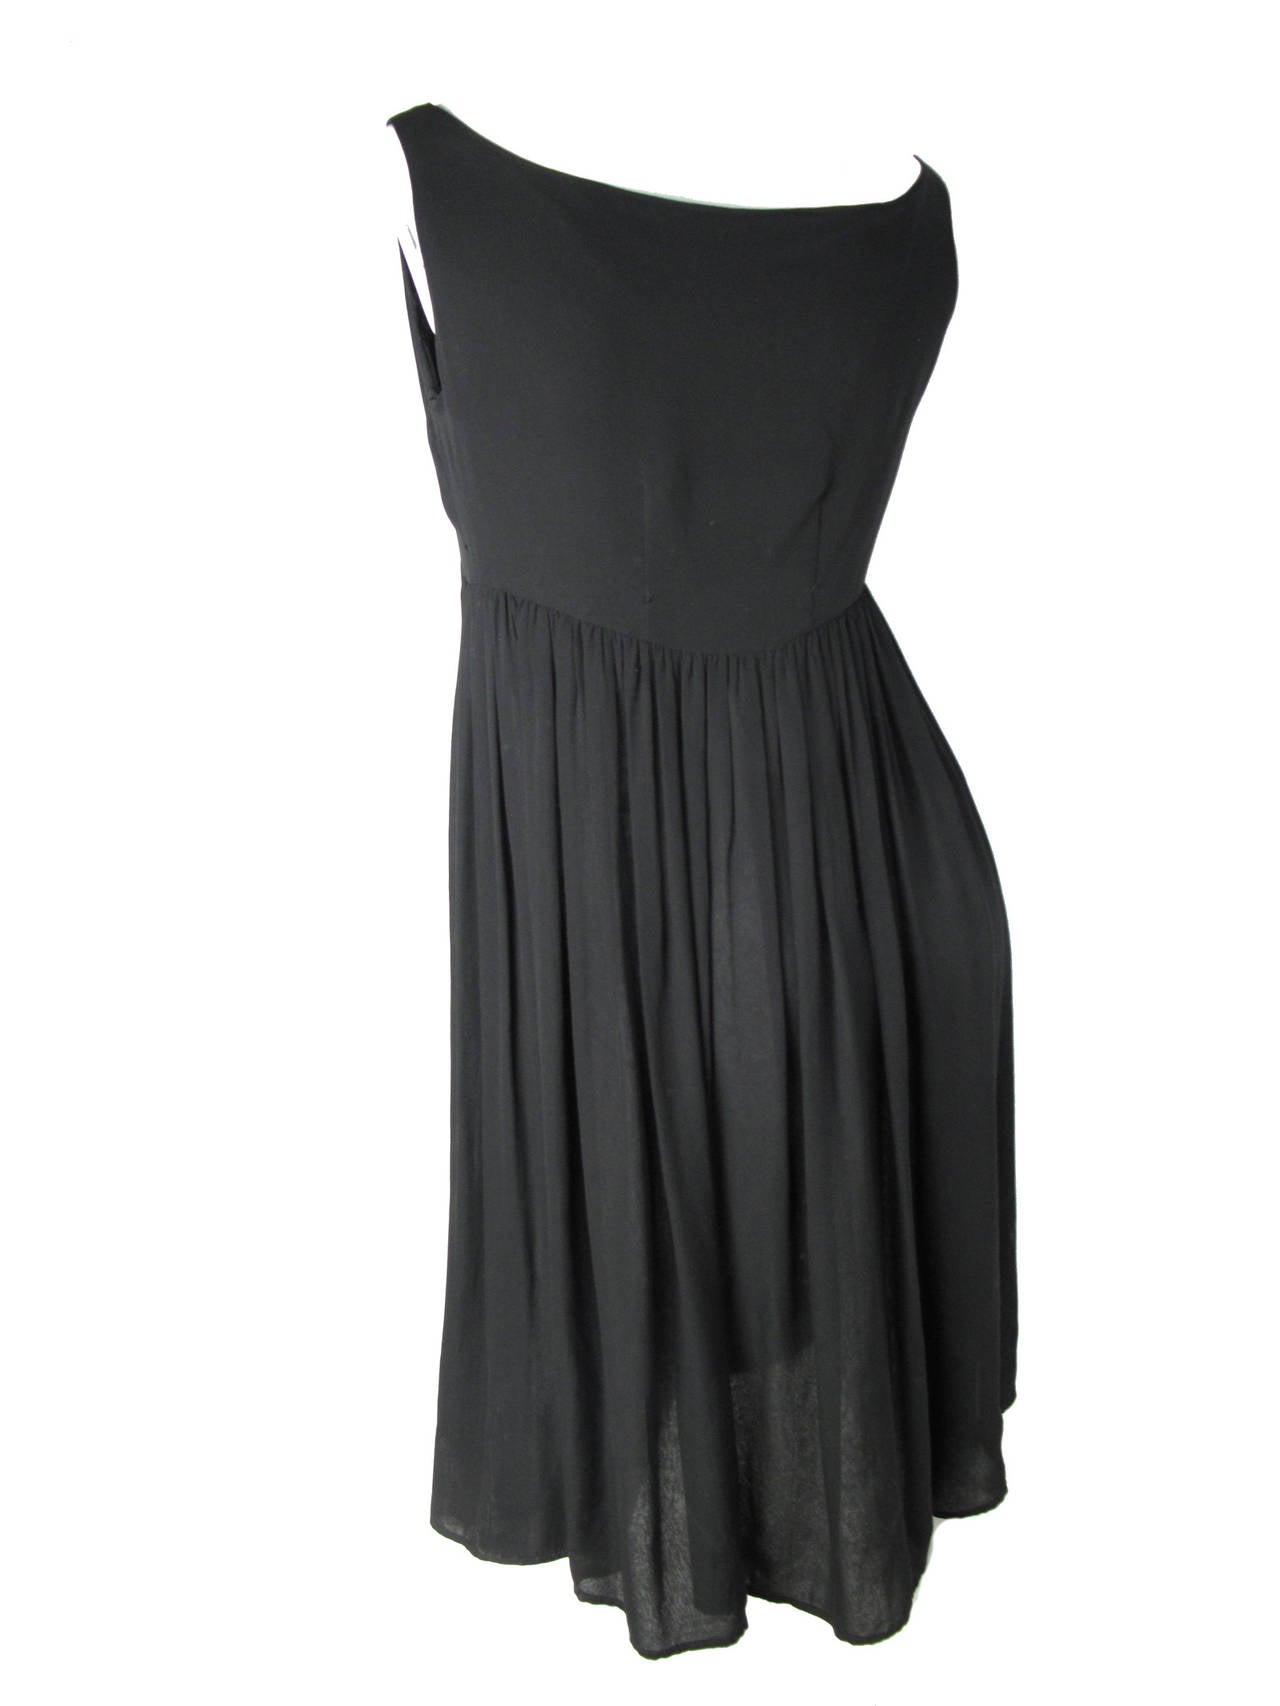 1960s Rudi Gernreich Black Silk Chiffon Baby Doll Dress  In Fair Condition For Sale In Austin, TX